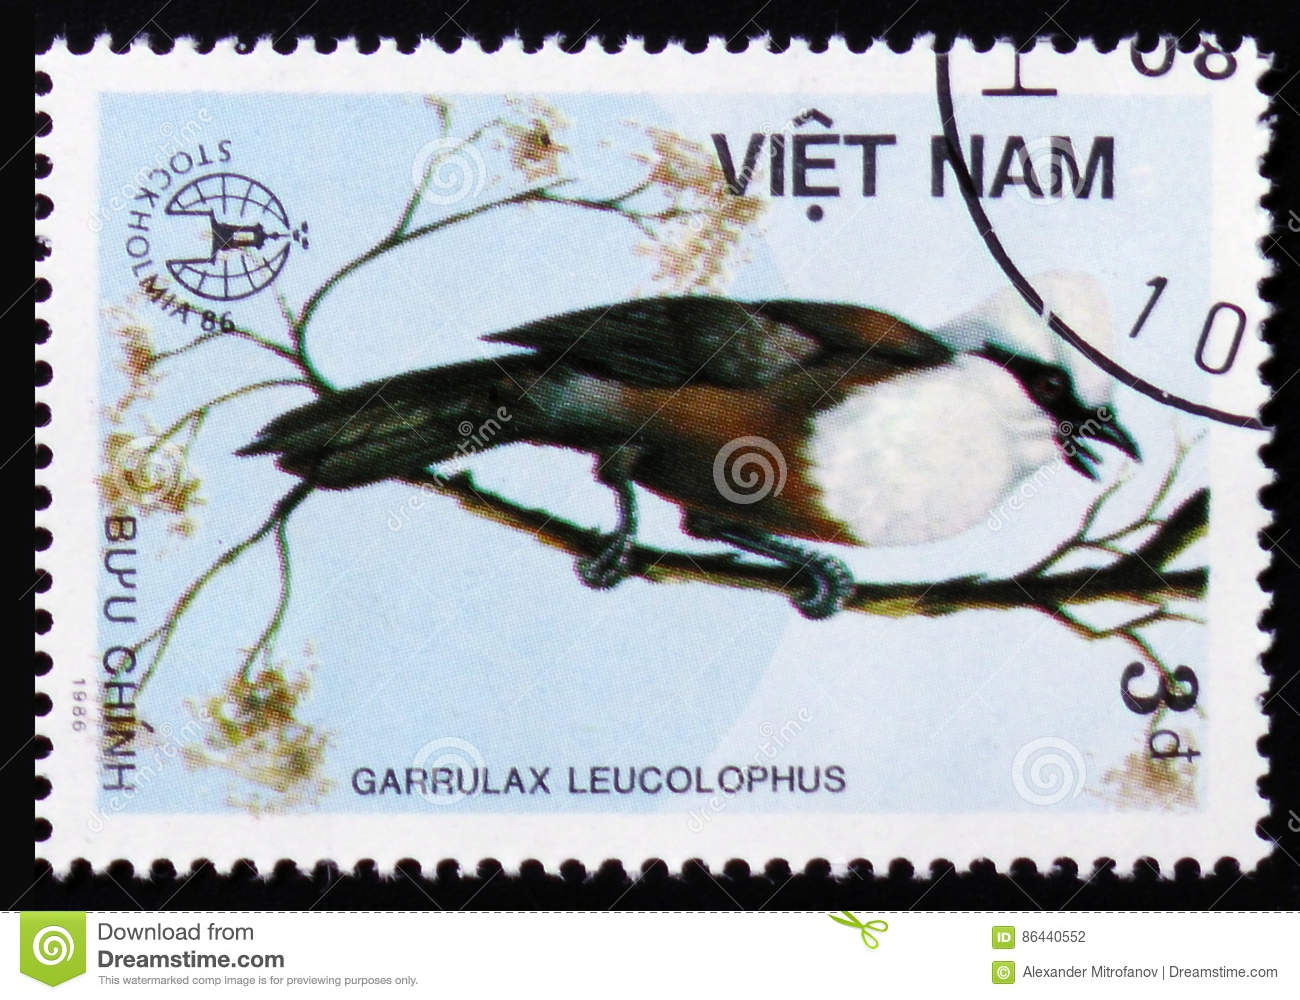 MOSCOW, RUSSIA - FEBRUARY 12, 2017: A stamp printed in Vietnam shows Garrulax leucolophus or white-crested laughingthrush, series